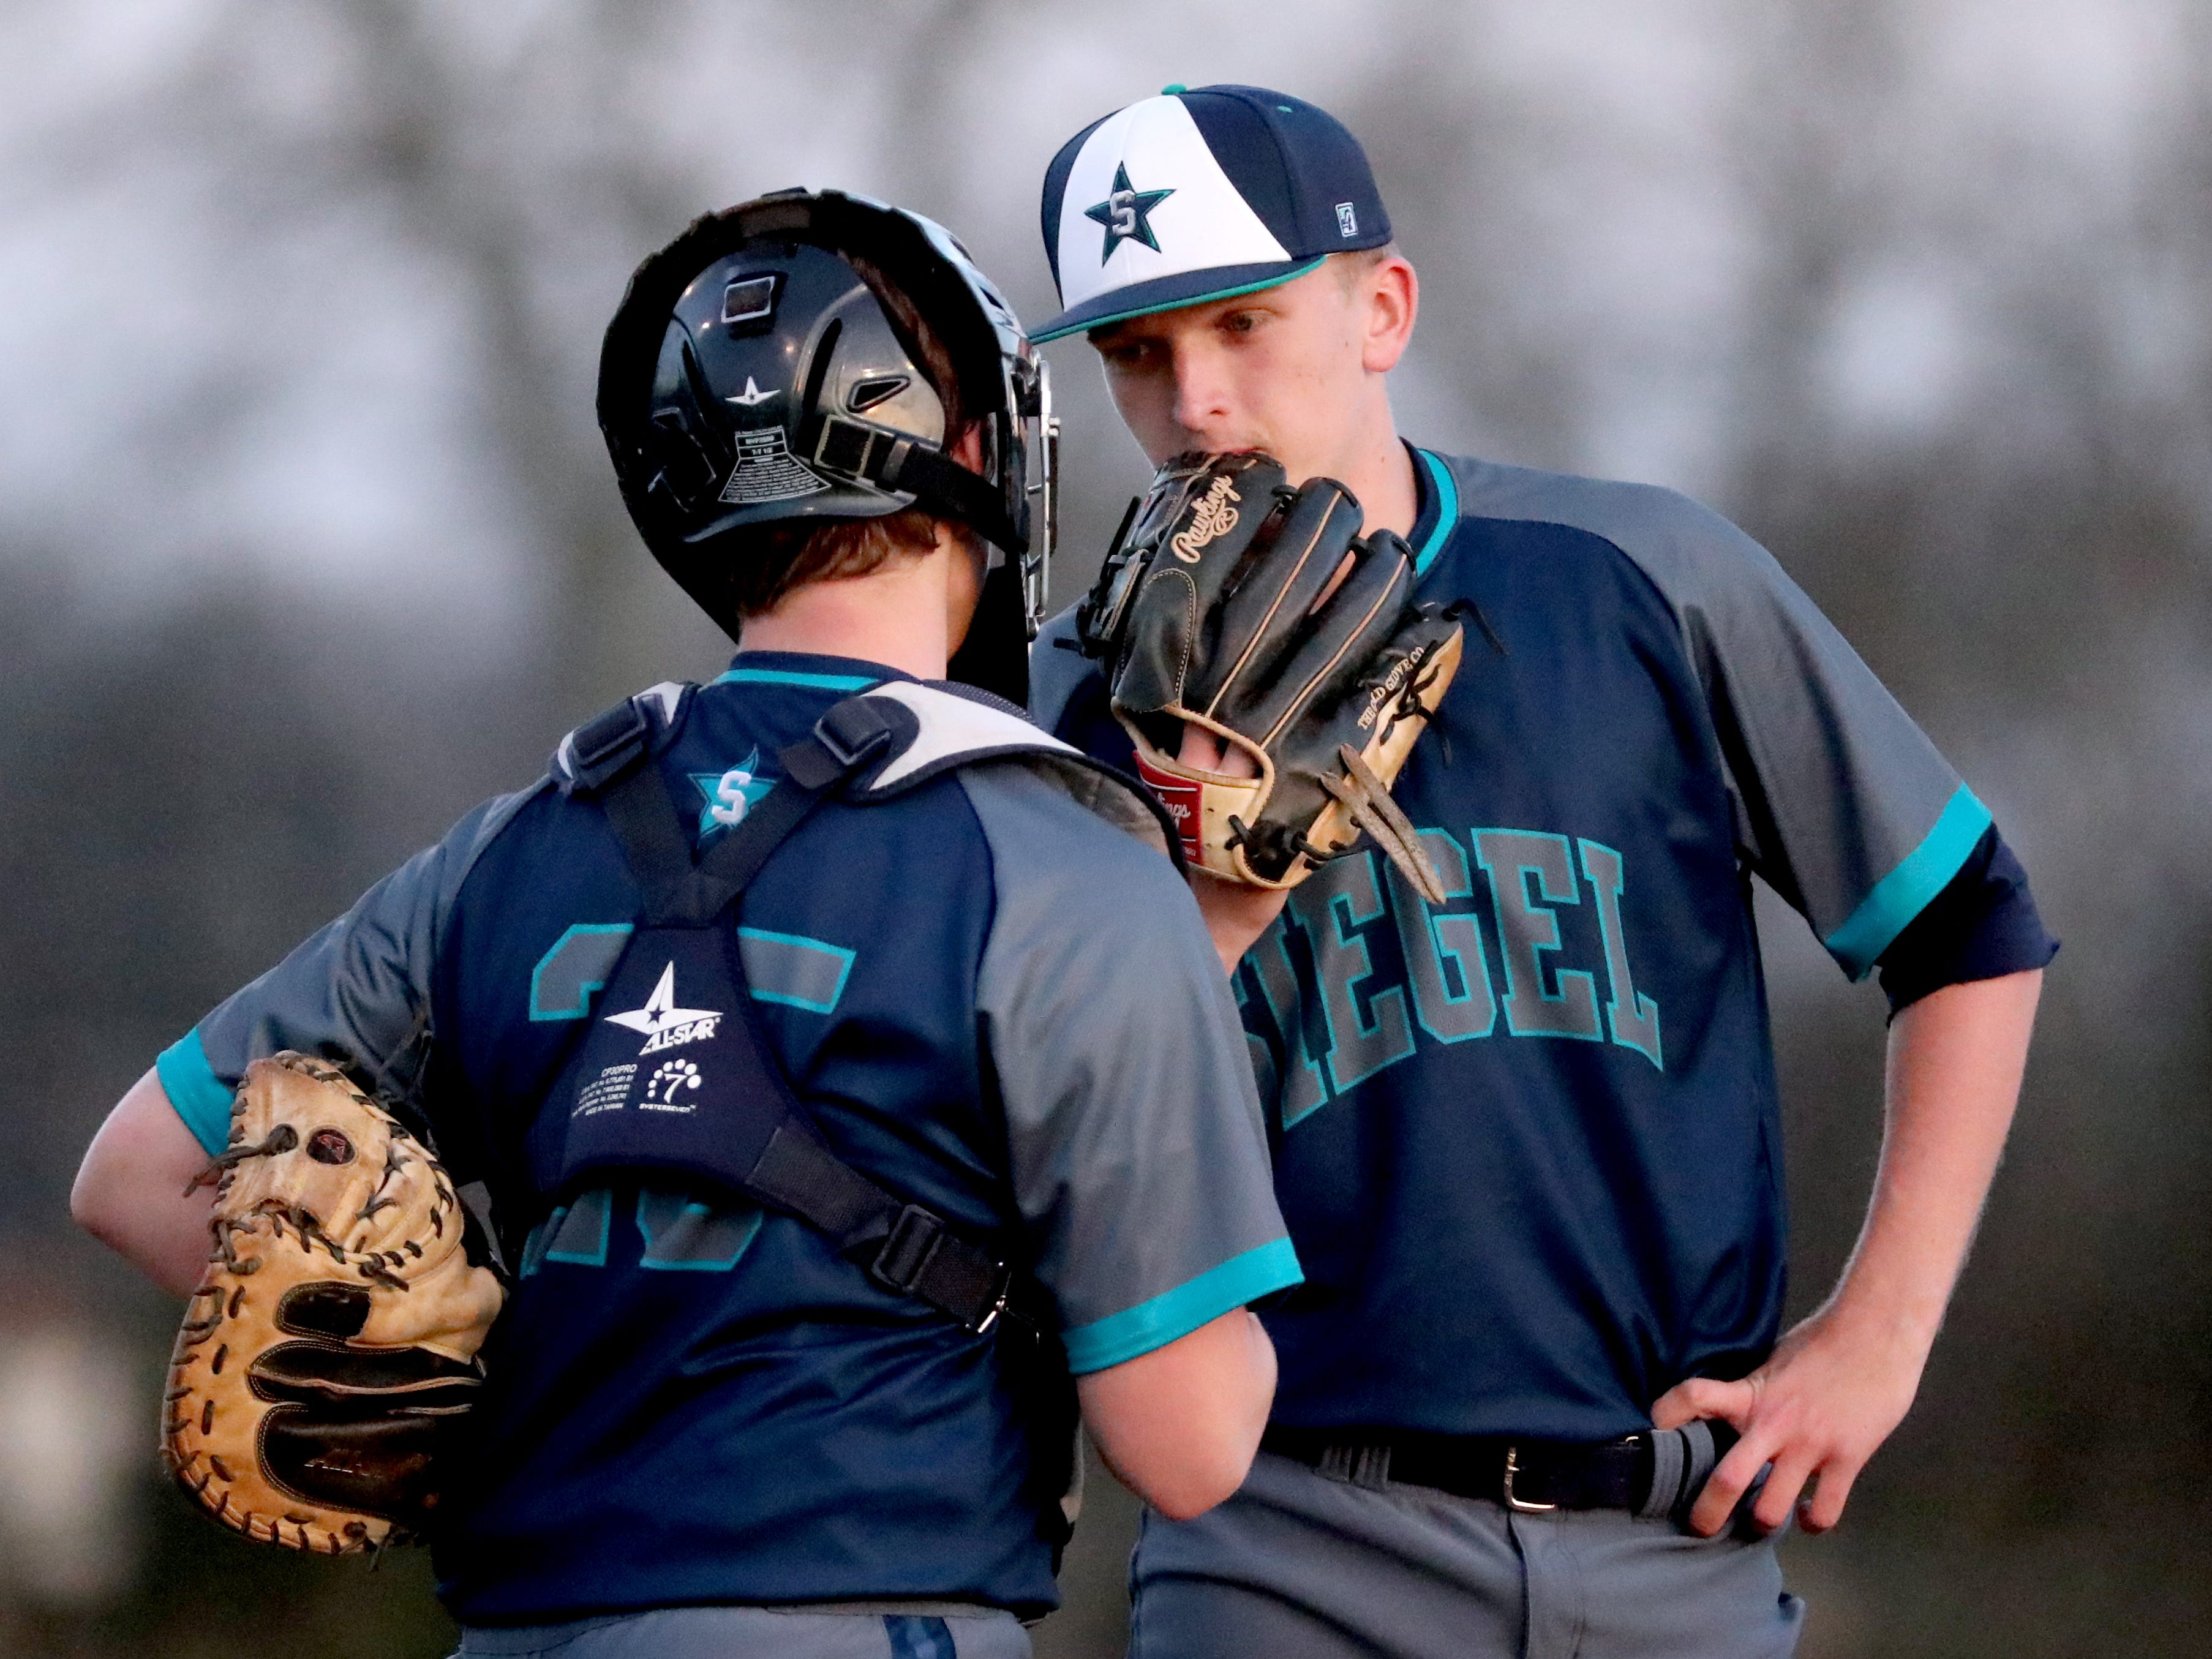 Siegel's catcher Jackson Cauthron (25) and Siegel's pitcher Jaden Lasley (17) talk on the pitchers mound during the game against Blackman, on Monday, March 11, 2019.